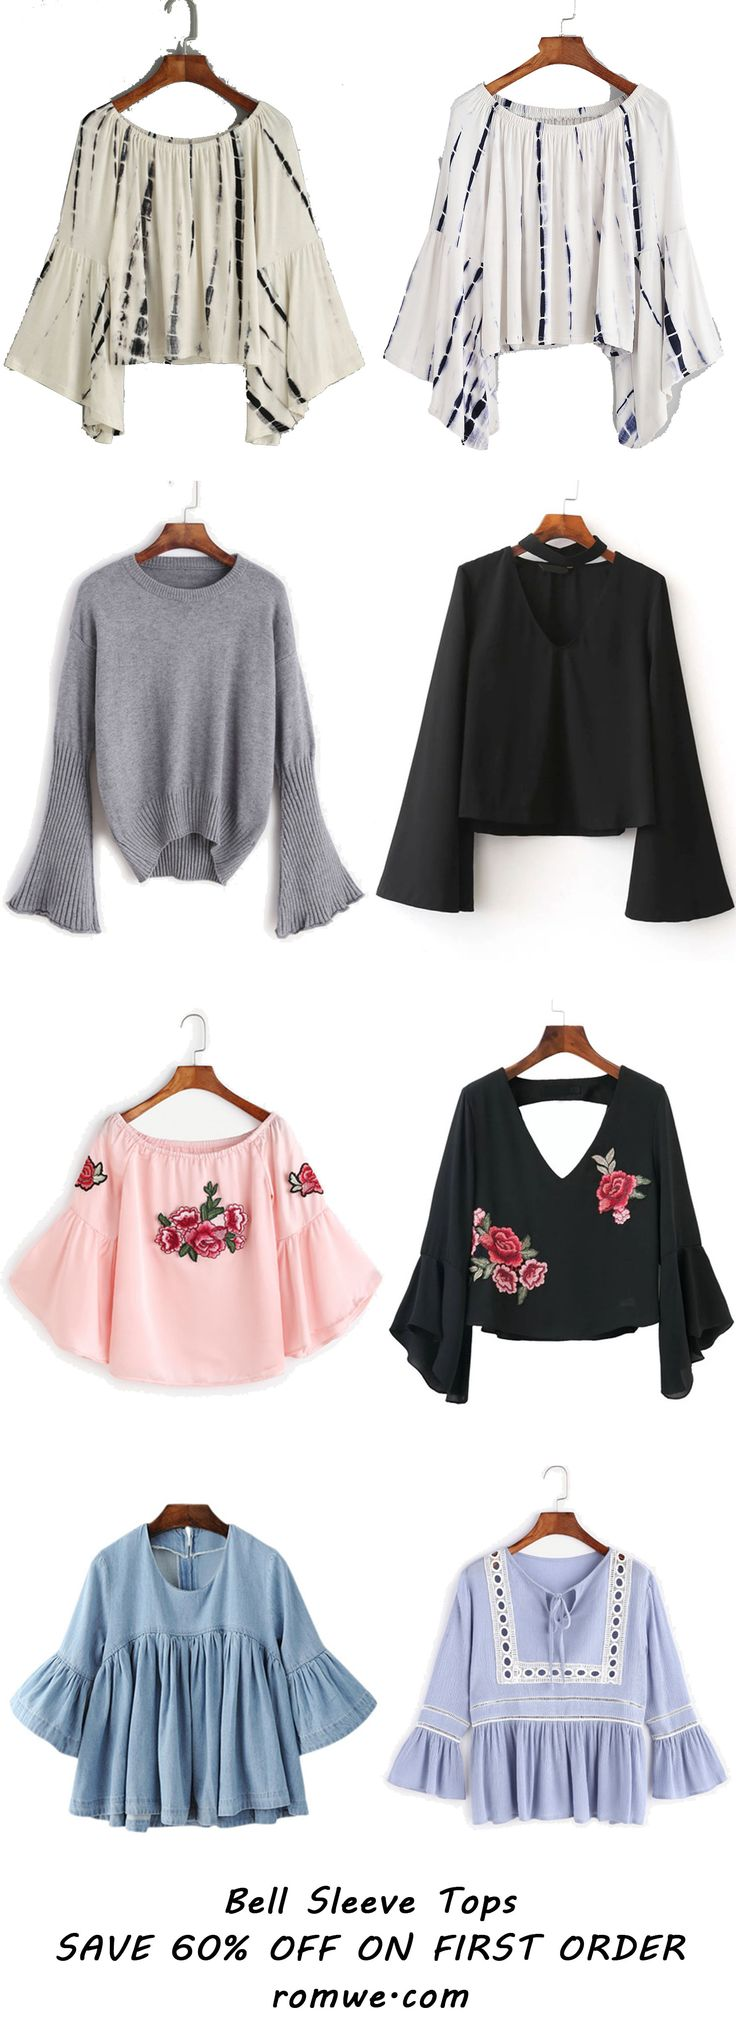 Bell Sleeve Tops Collection - romwe.com